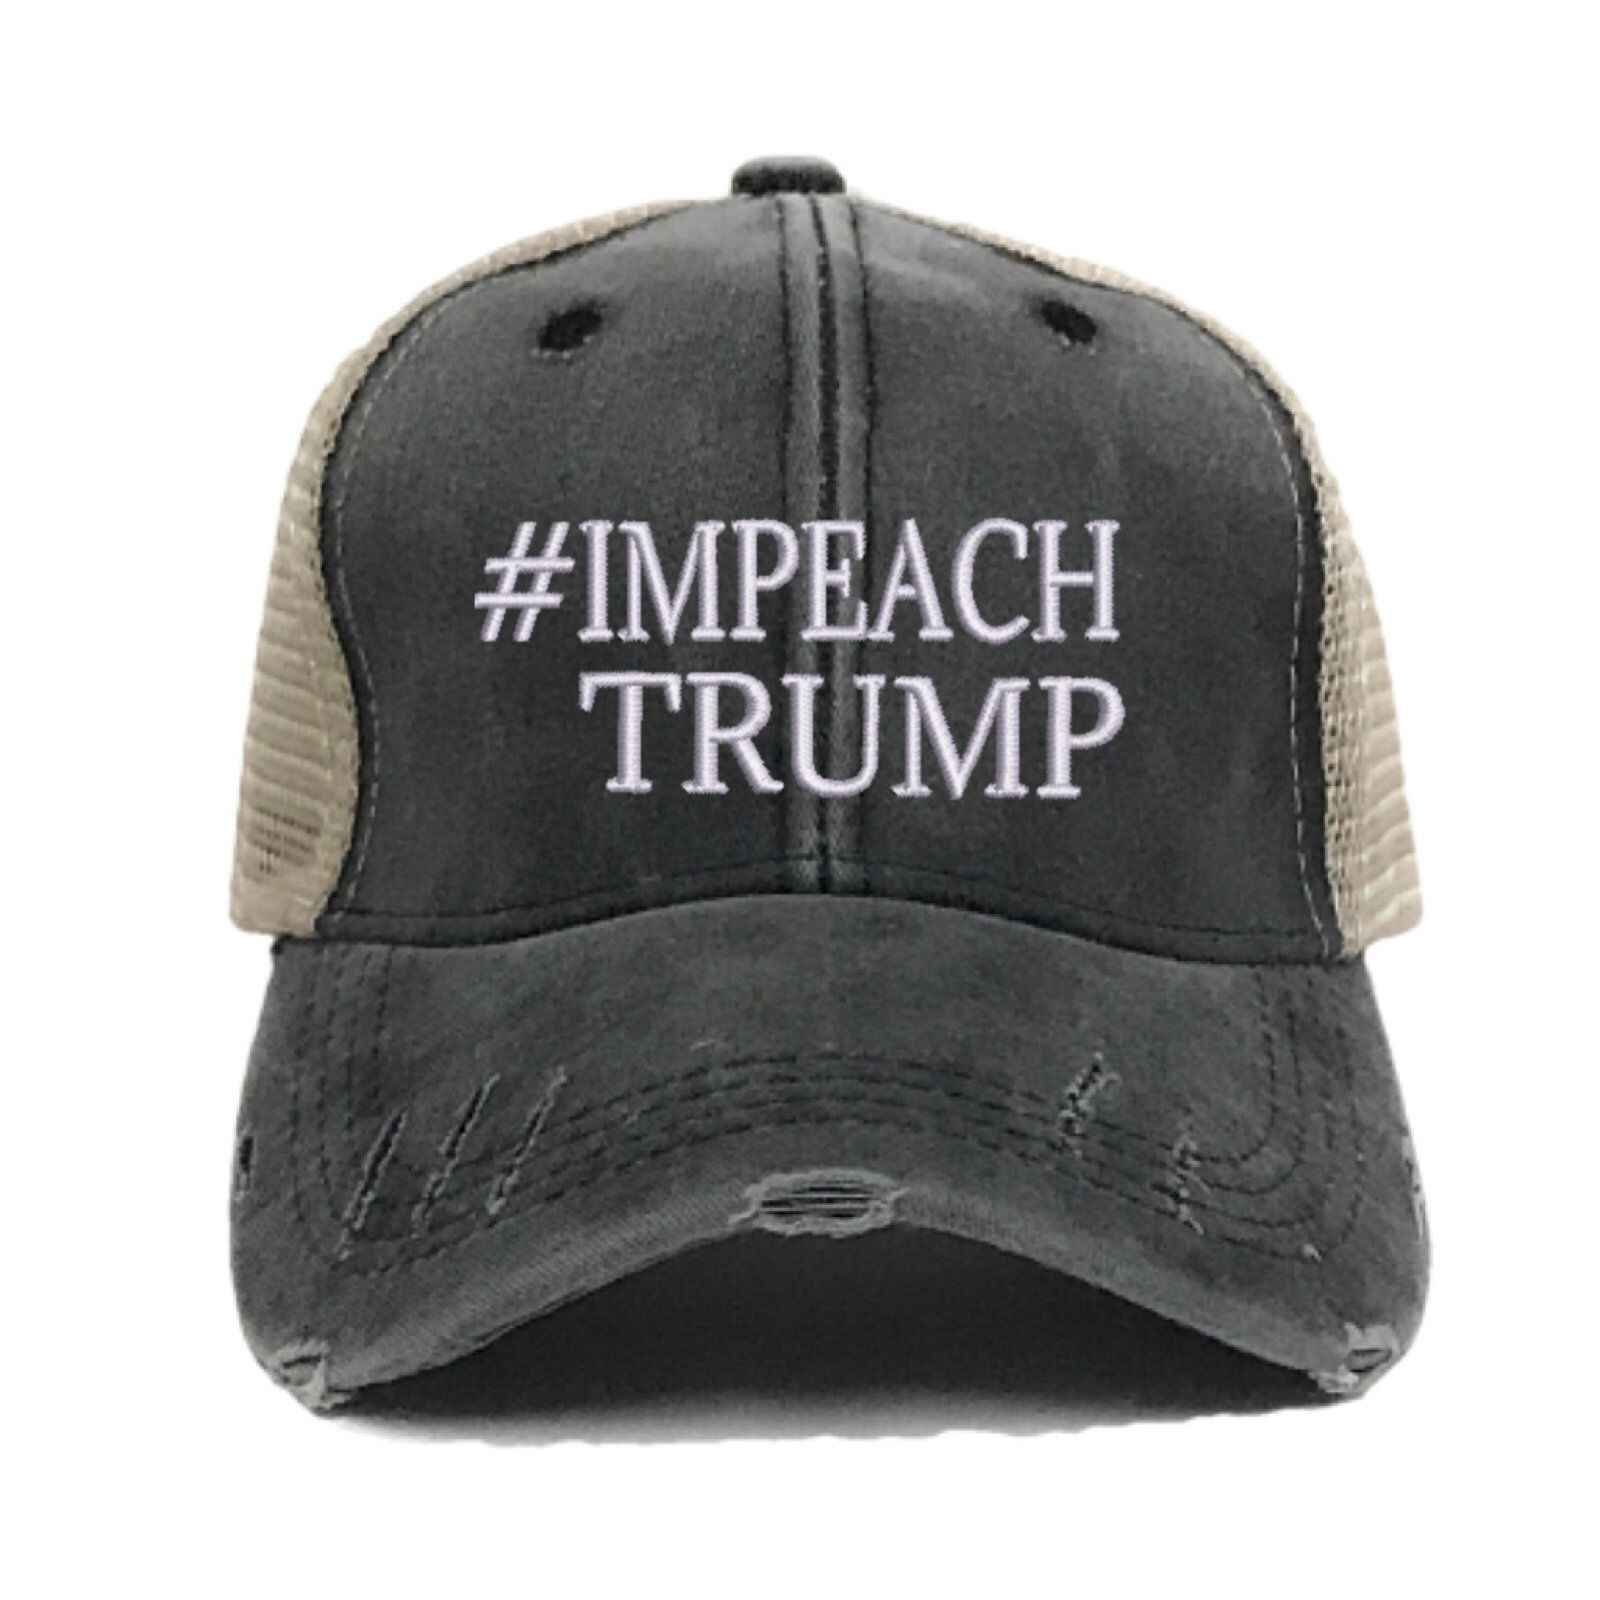 028c071dc338a Check out our anti Trump Hat in our  etsy shop  IMPEACH TRUMP Trucker Hat -  Custom Distressed - Embroidered Hats - Political - Anti Government - Gift  For ...